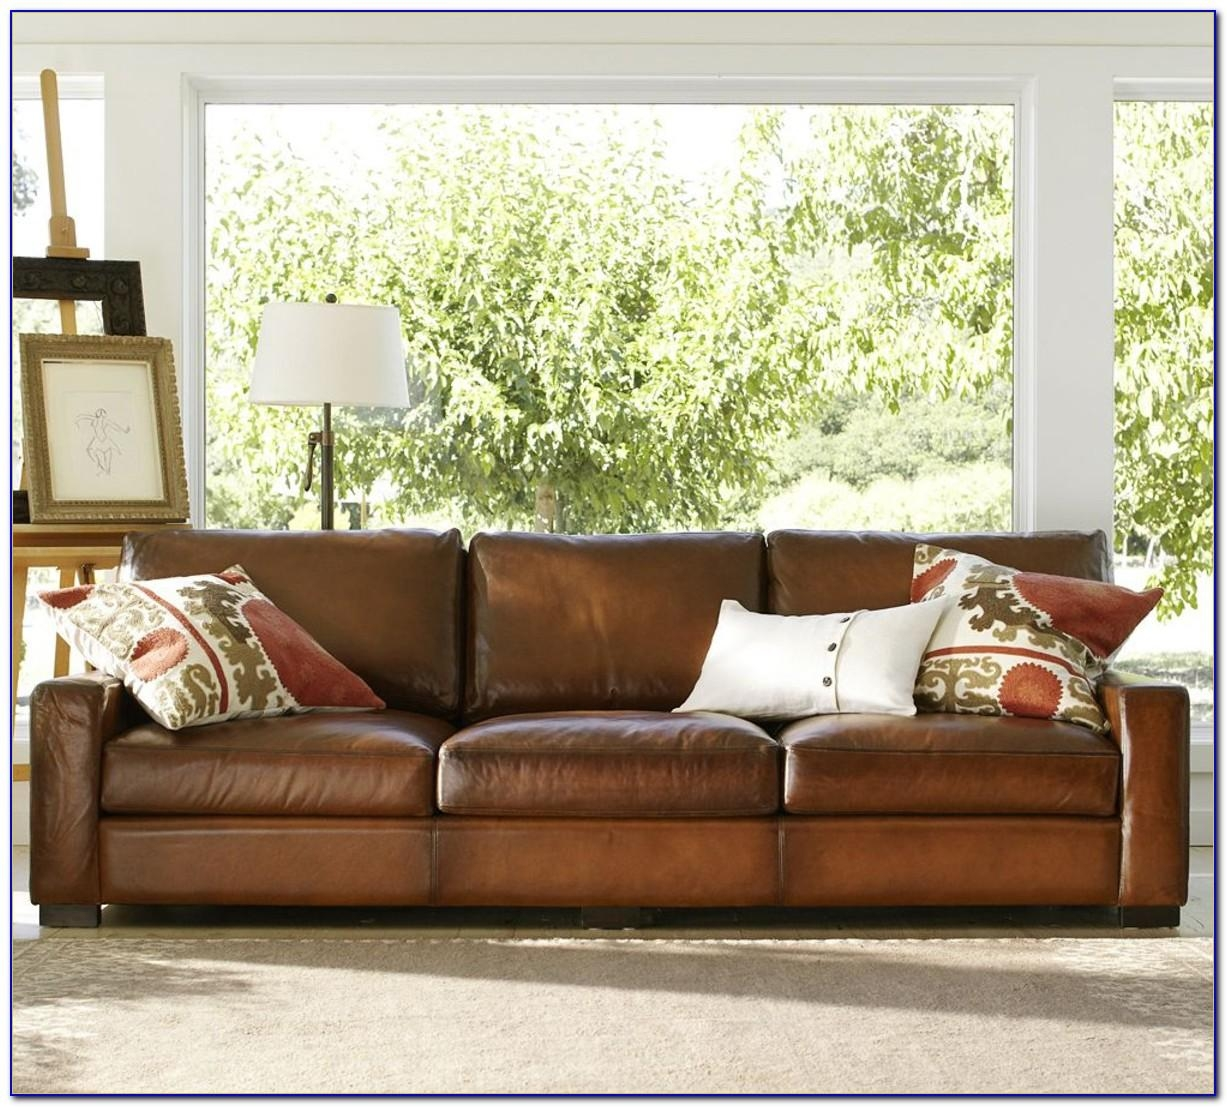 Sofas Center : Sofat Beds Design Charming Ancient Leather Sleeper Throughout Craigslist Leather Sofa (Image 19 of 20)